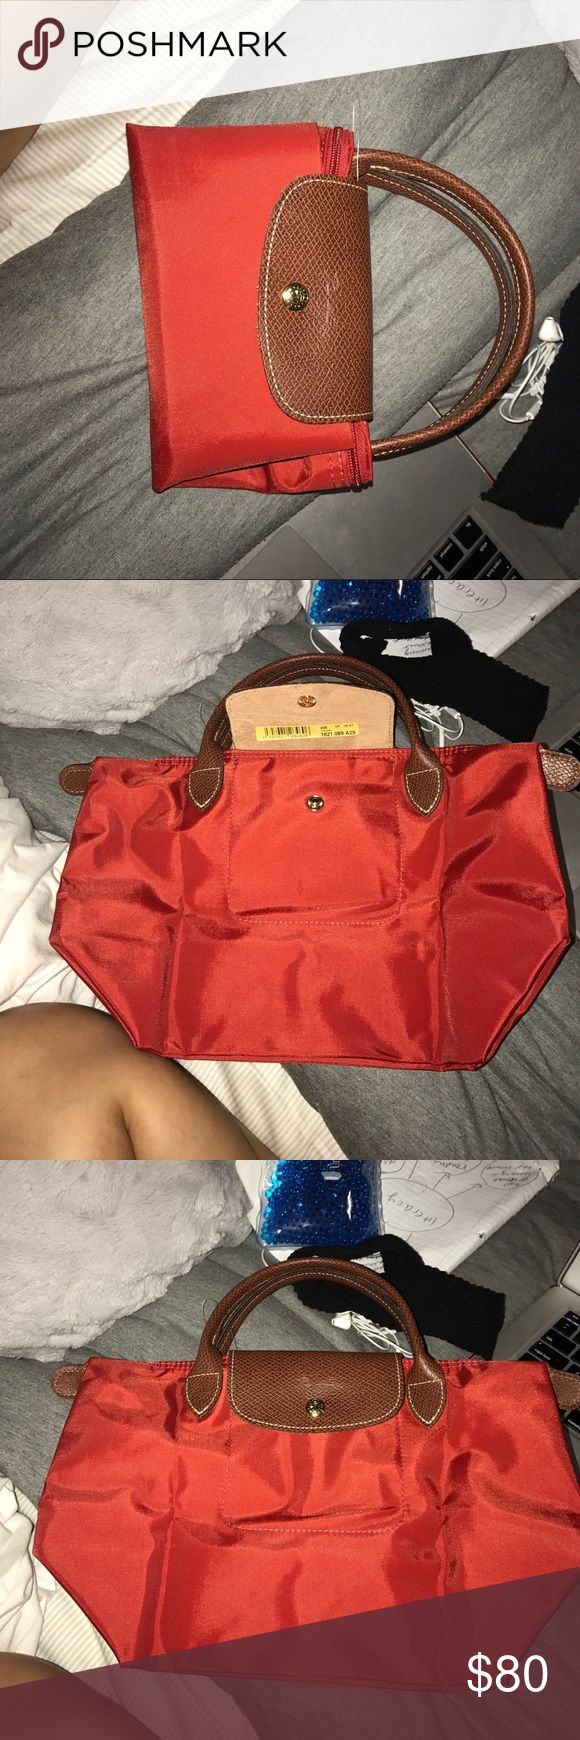 Long champ bag Red longchamp bag 95$ 105$ with tax unused, am will to change price if asked Longchamp Bags